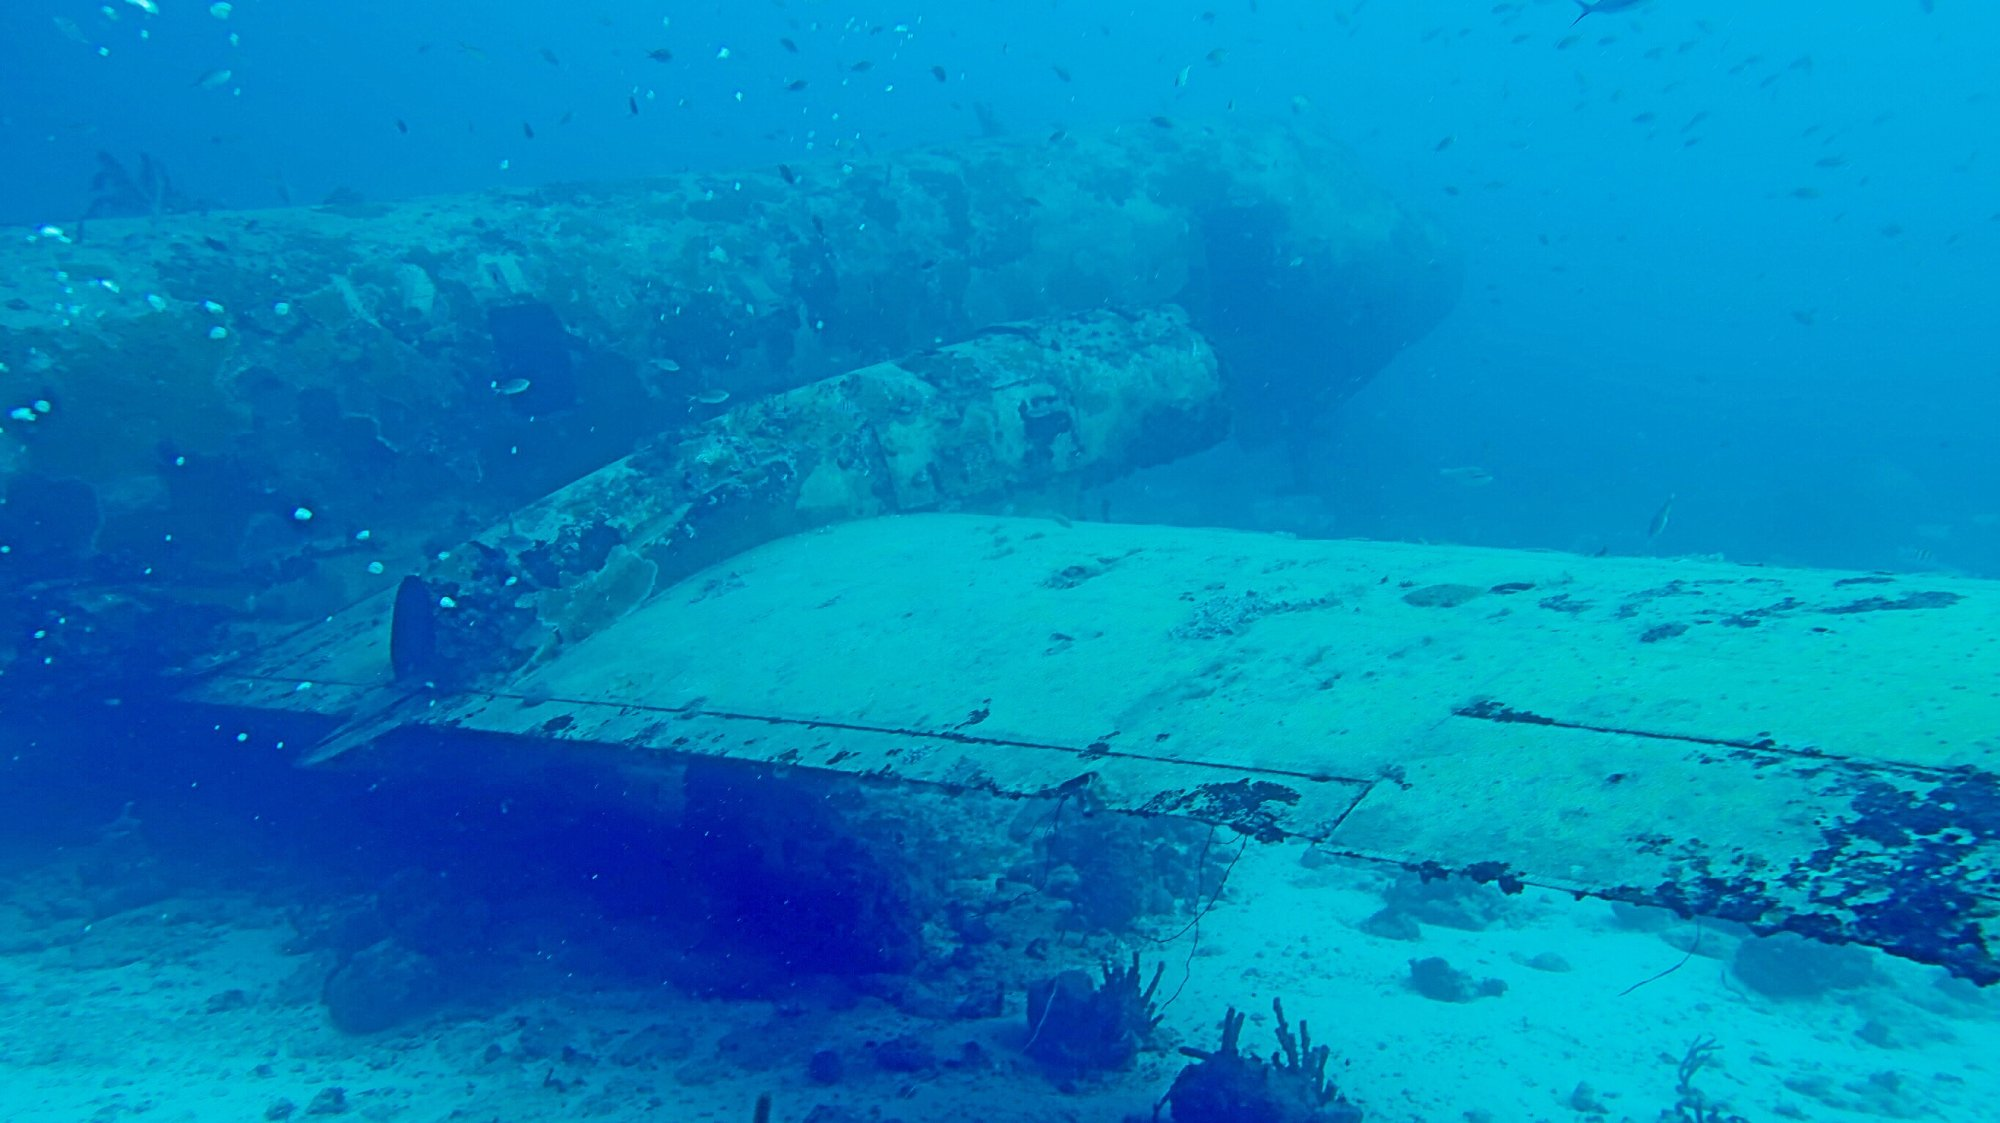 The airport dive site